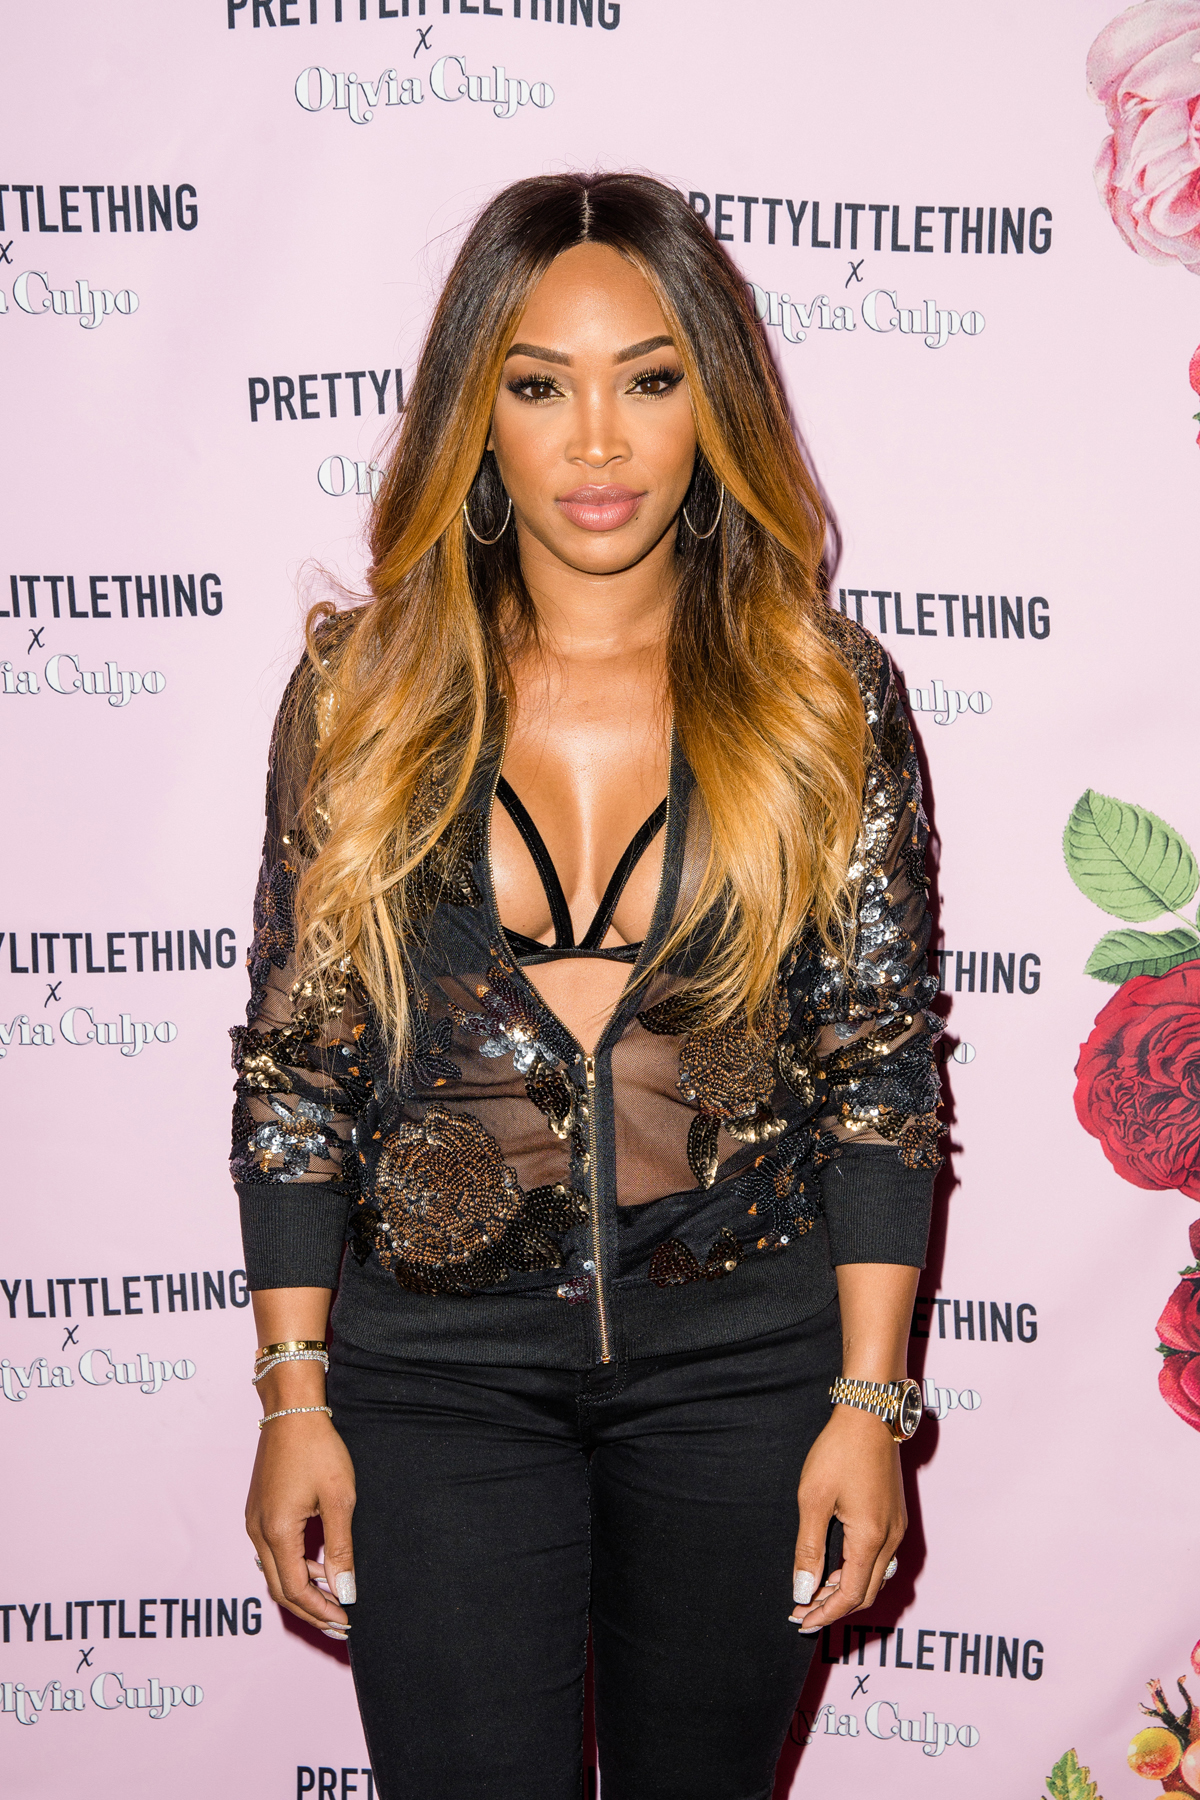 PrettyLittleThing PLT X Olivia Culpo Collection  Celebrity Launch Party Malika Haqq.jpg